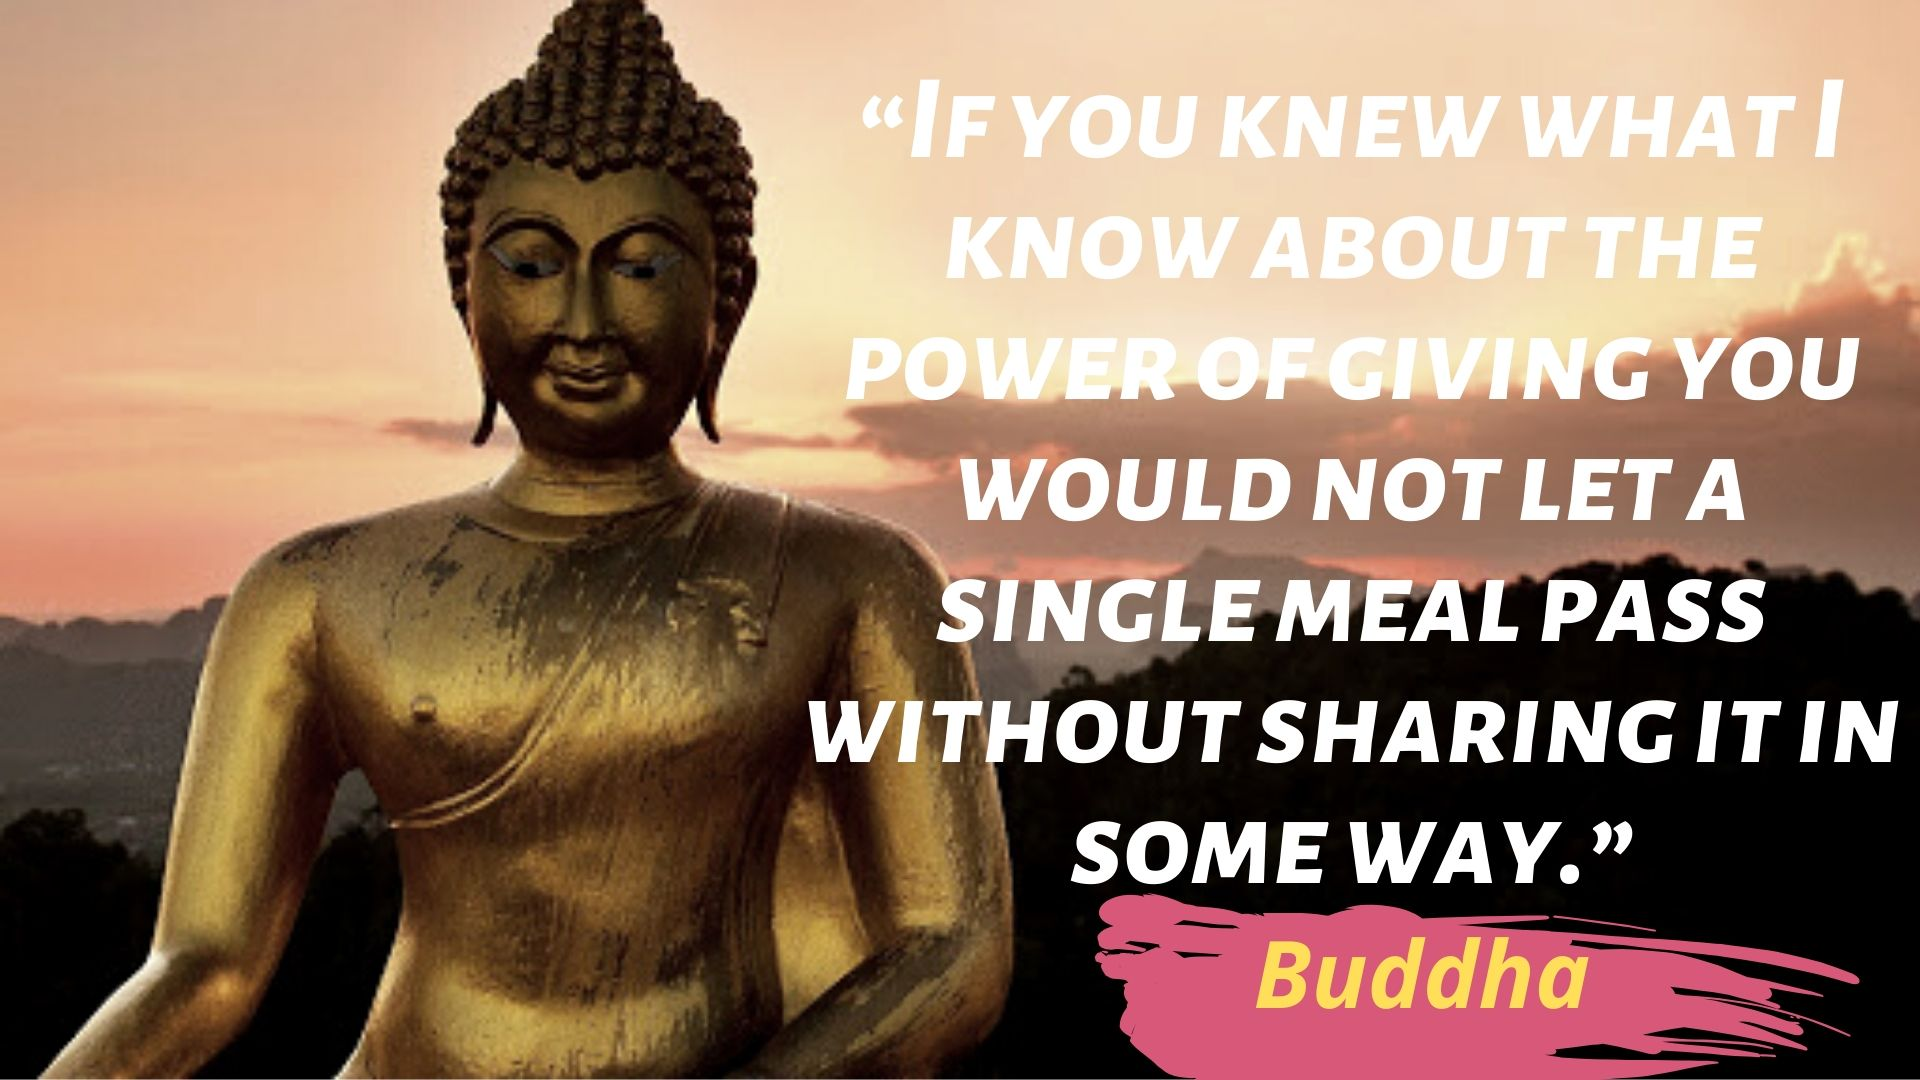 If You Knew What I Know About The Power Of Giving You Would Not Let A Single Meal Pass Without Sharing It In Some Way